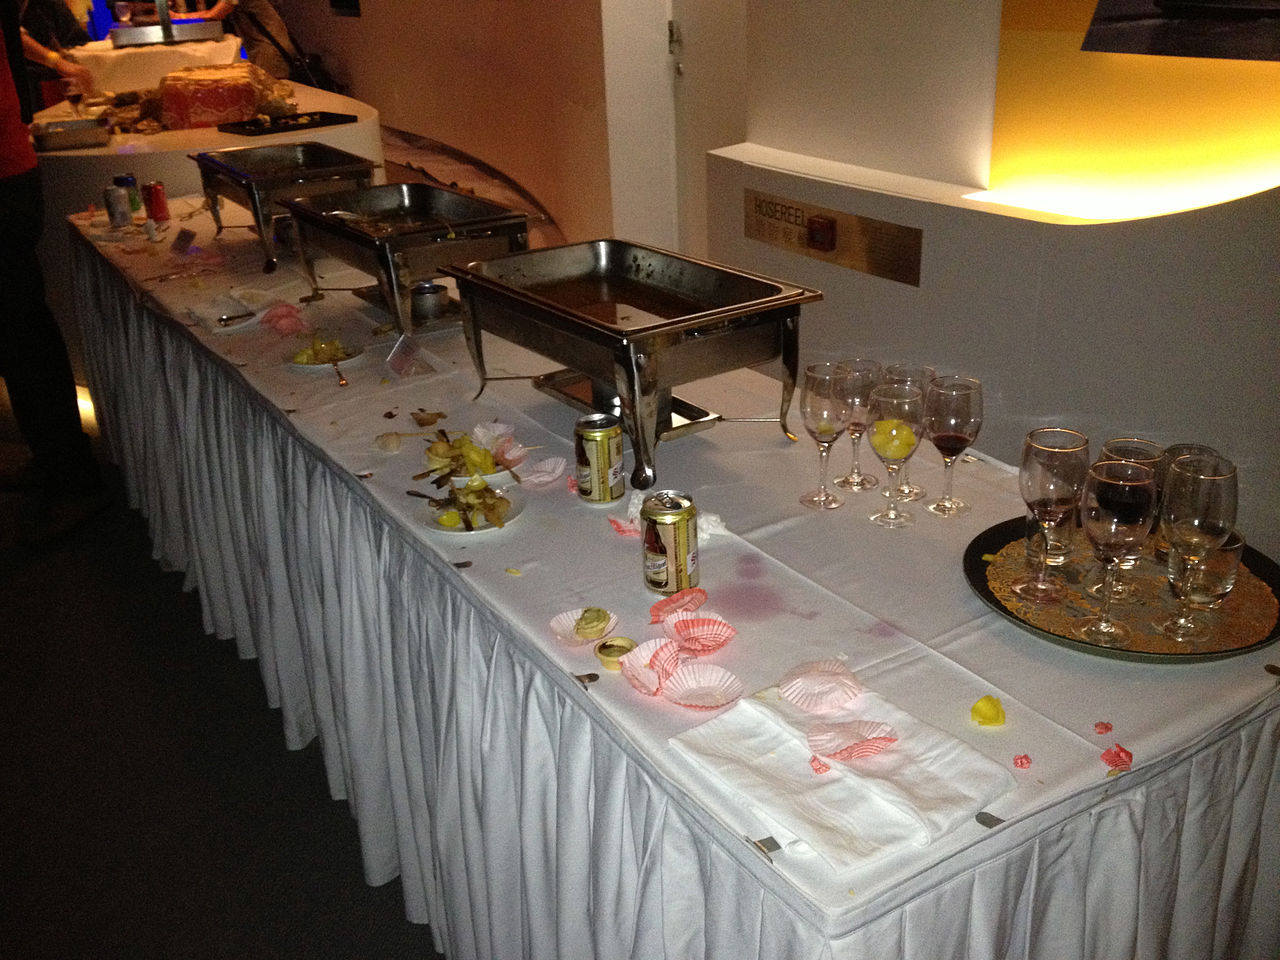 image - After Party Cleaning- Make Your Job Easier in Smart Ways